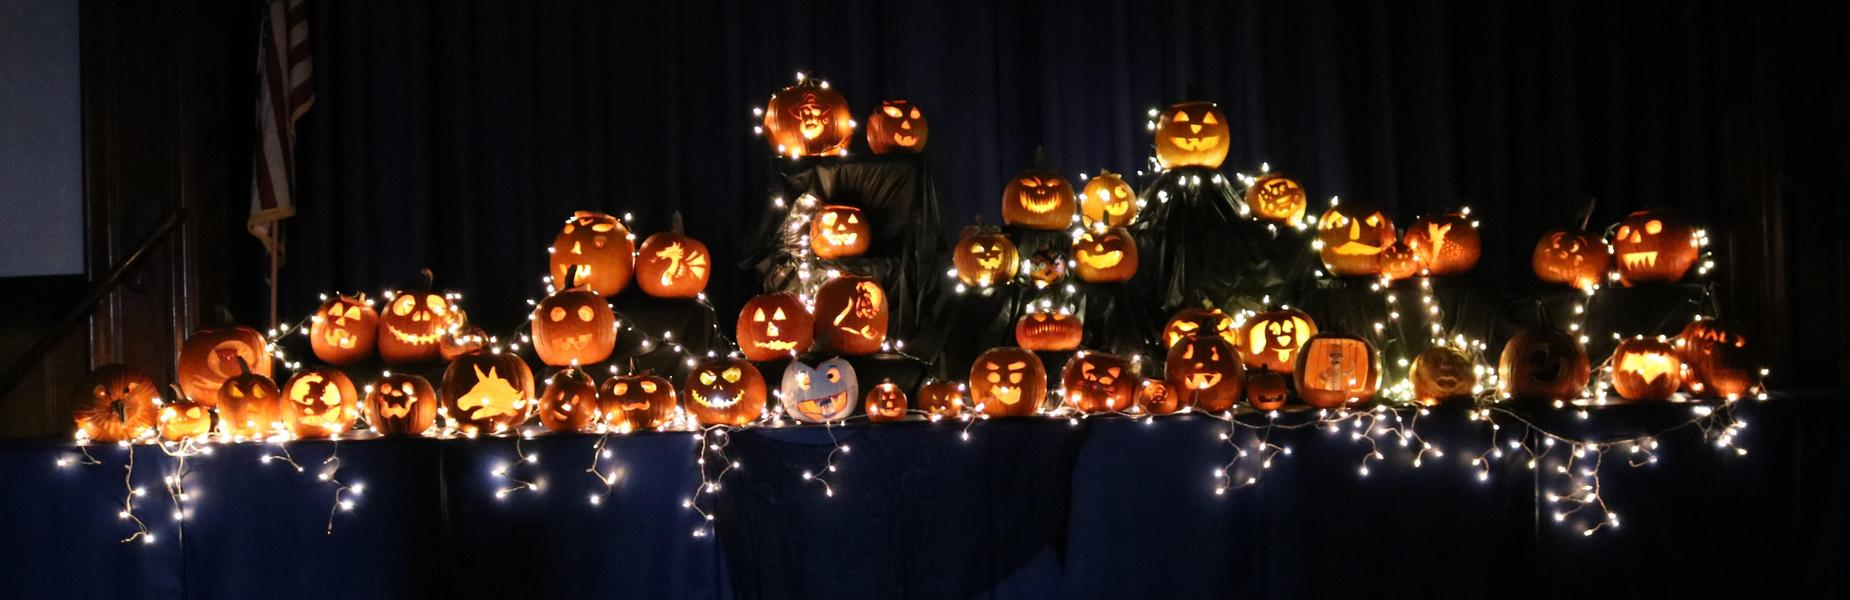 Carved pumpkins lit up in the darkened gym at McKinley on Halloween.